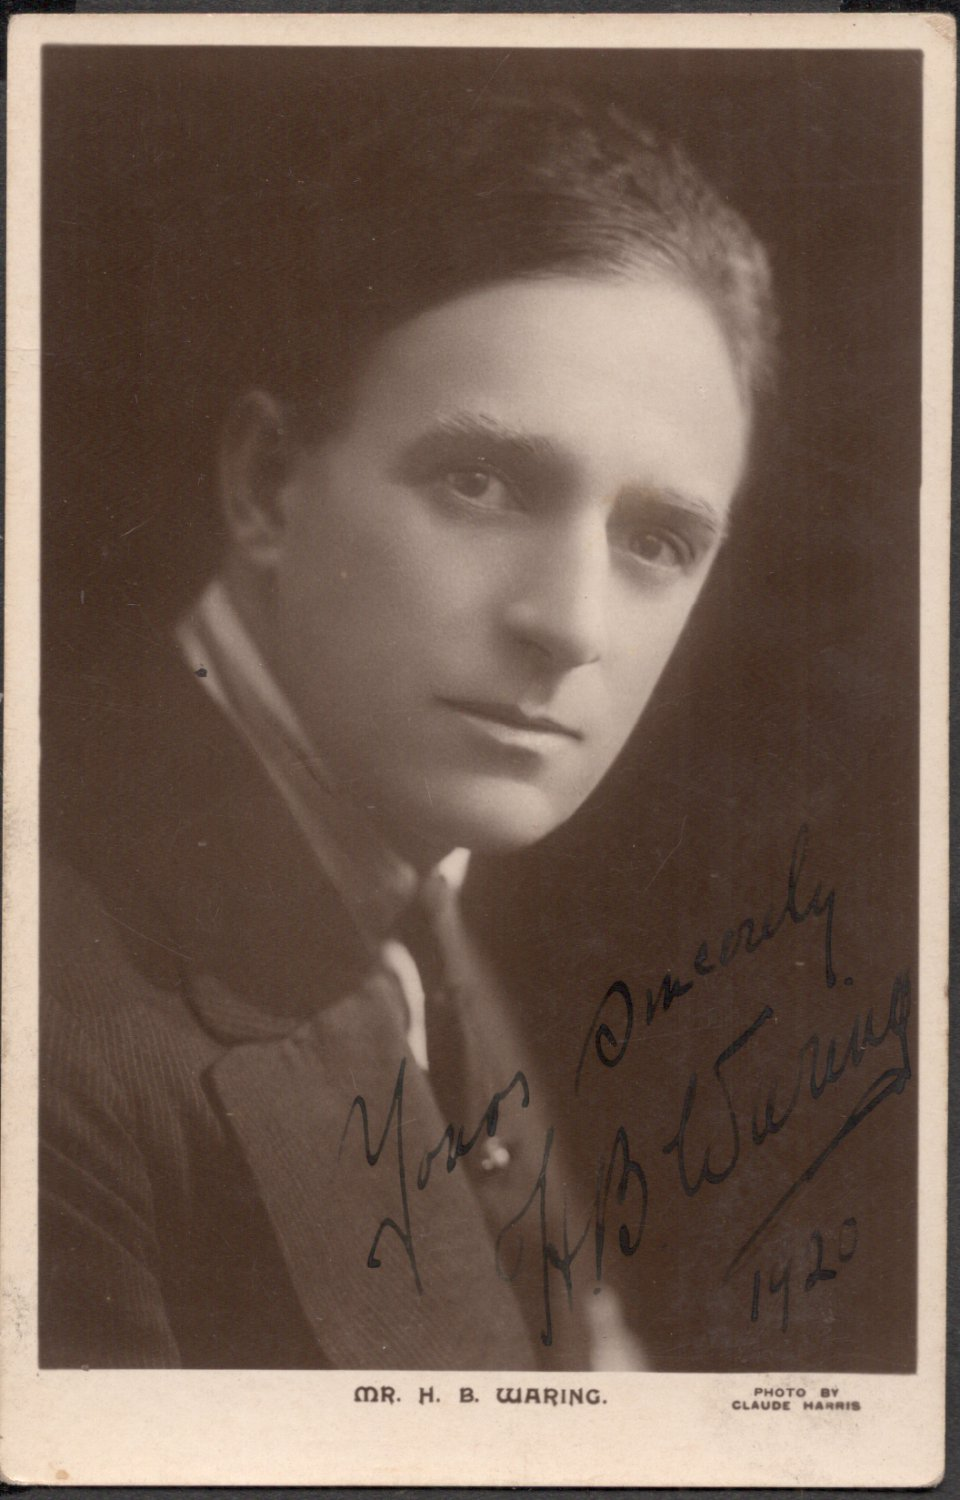 SIGNED MR H. B. WARRING PICTURE POSTCARD 1920'S